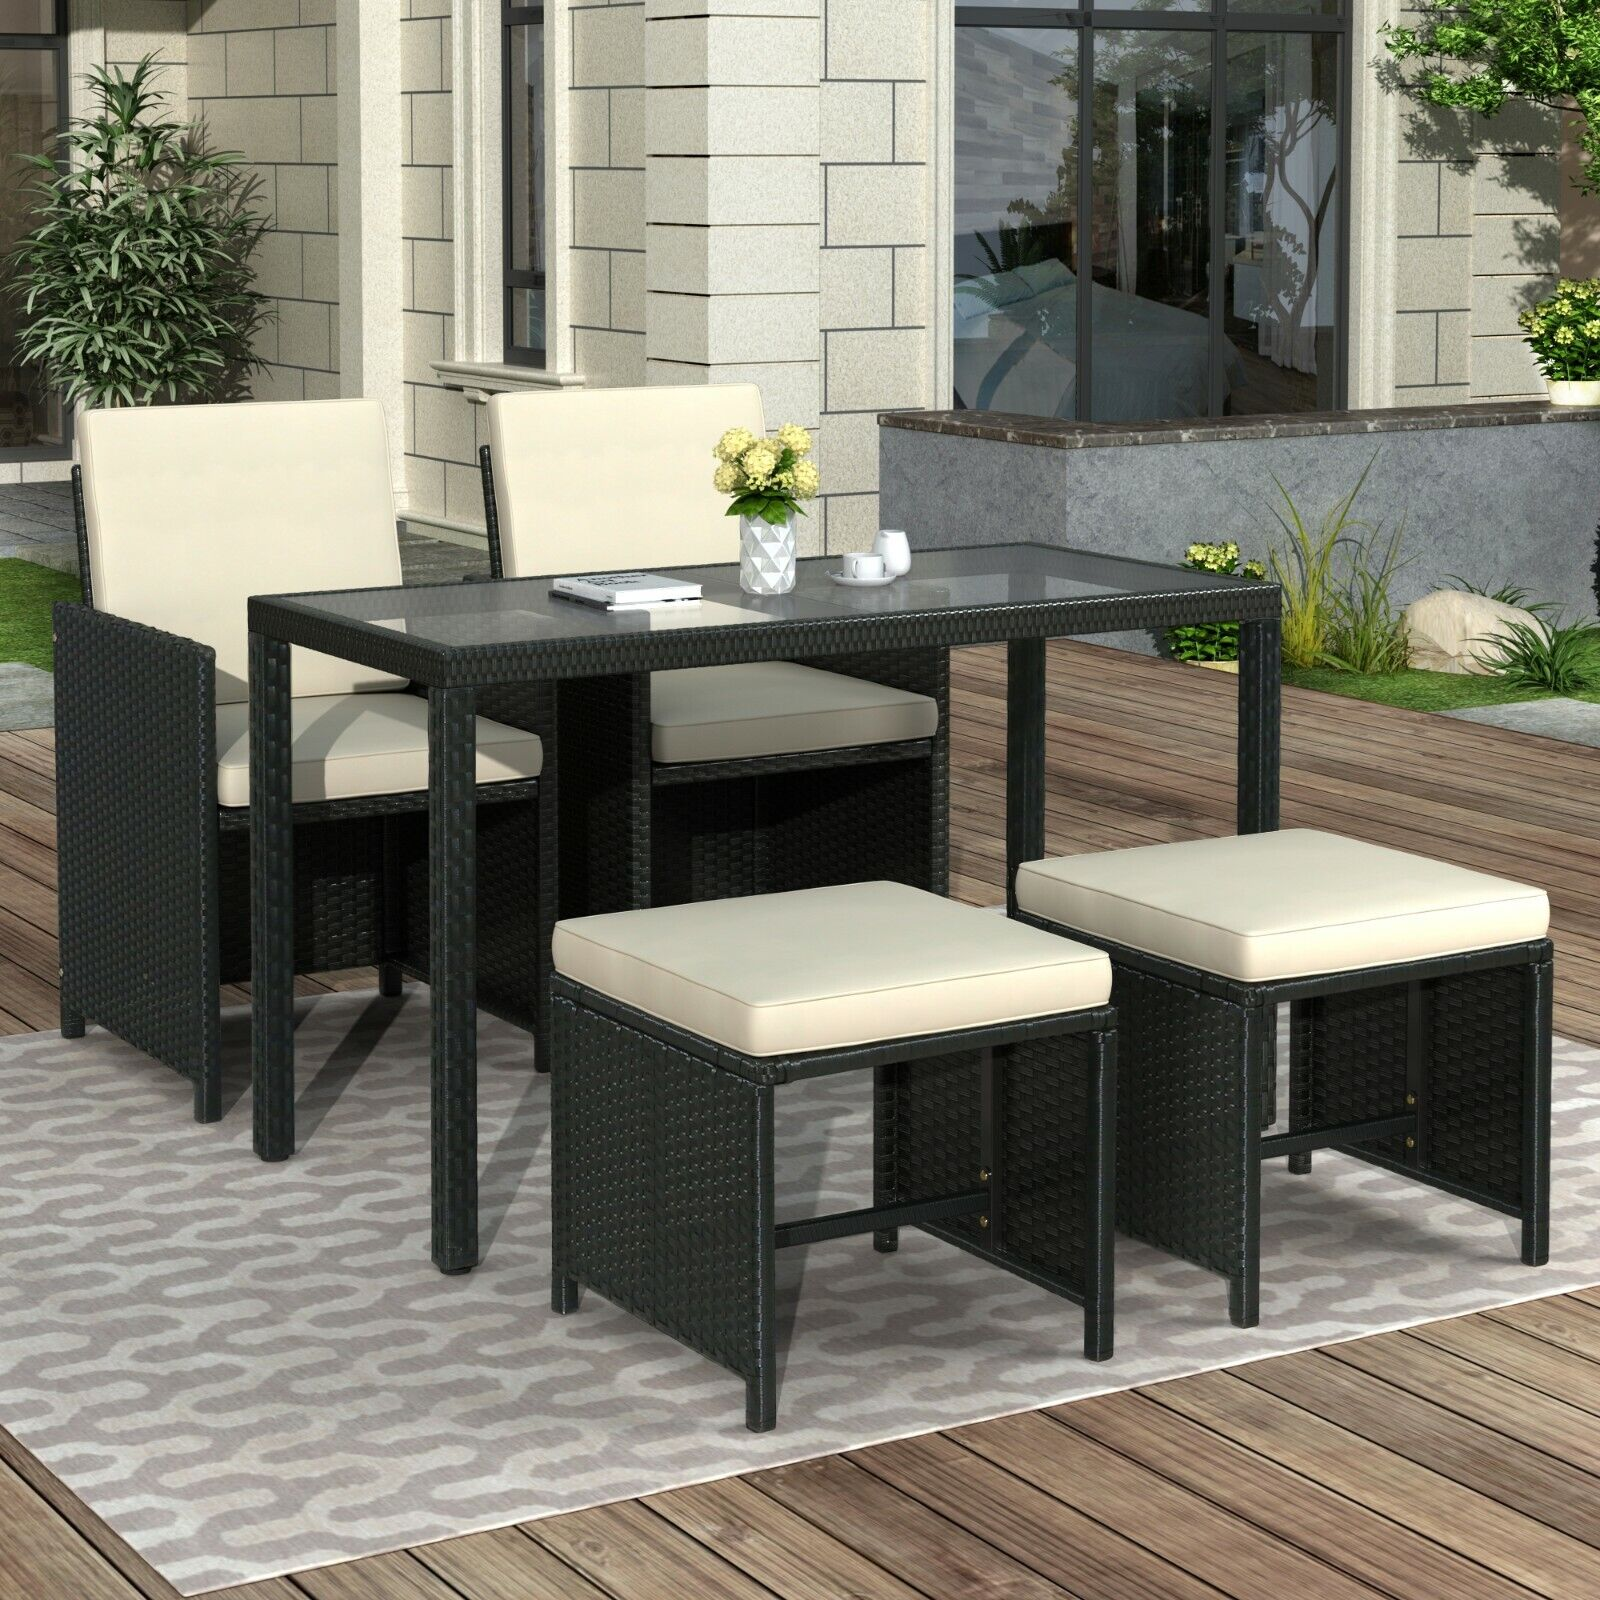 Outdoor Patio Garden Furniture Set Rattan Glass Table Stool